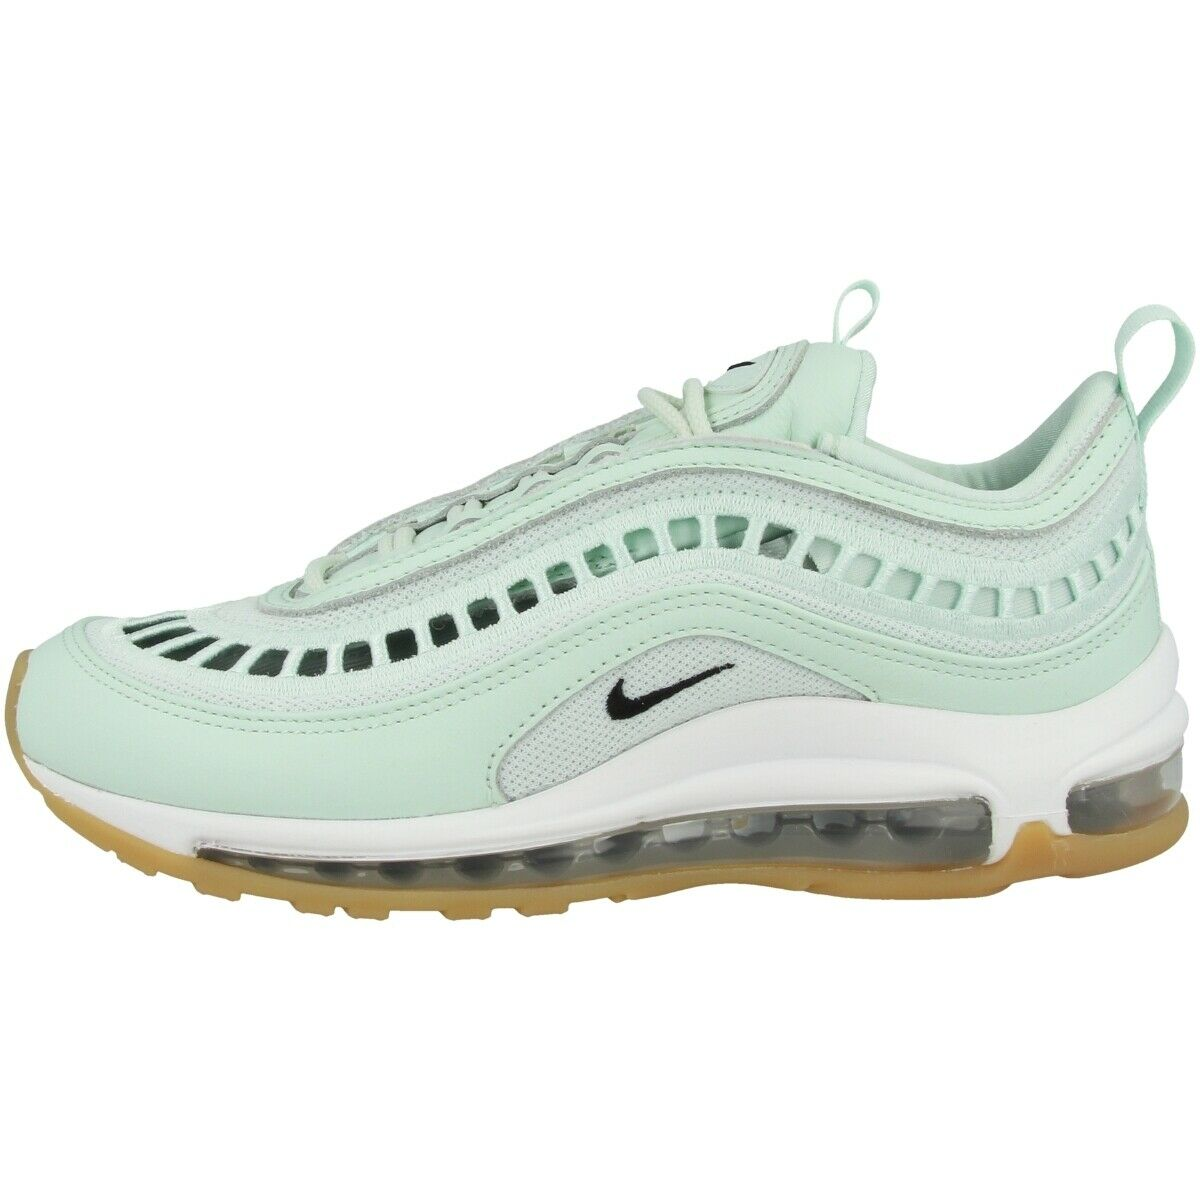 Nike Air Max 97 Ultra' 17 Women shoes Sneaker Trainers ao2326-300